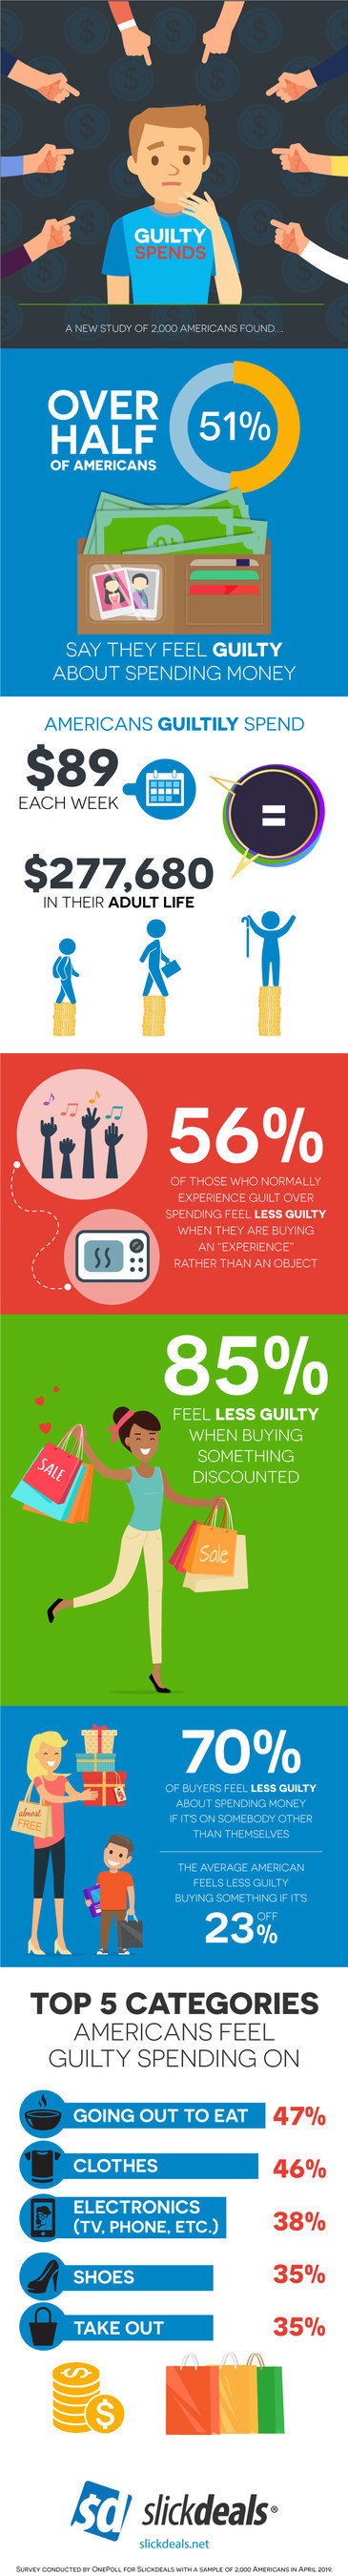 New survey from Slickdeals reveals that more than half of Americans say they feel guilty about spending money